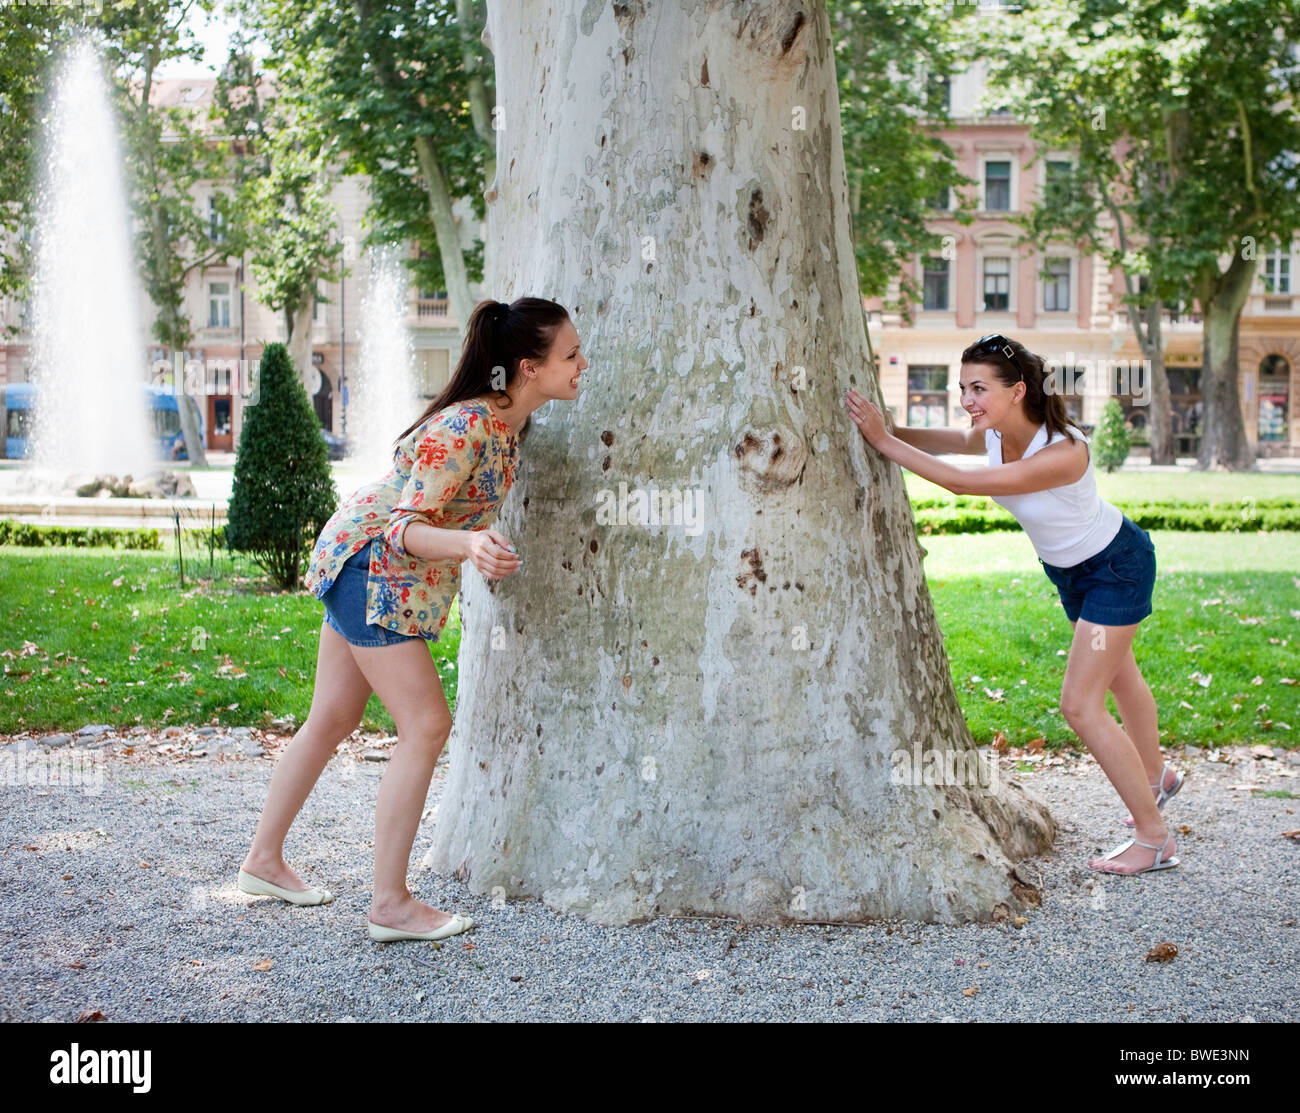 Young women playing hide and seek - Stock Image